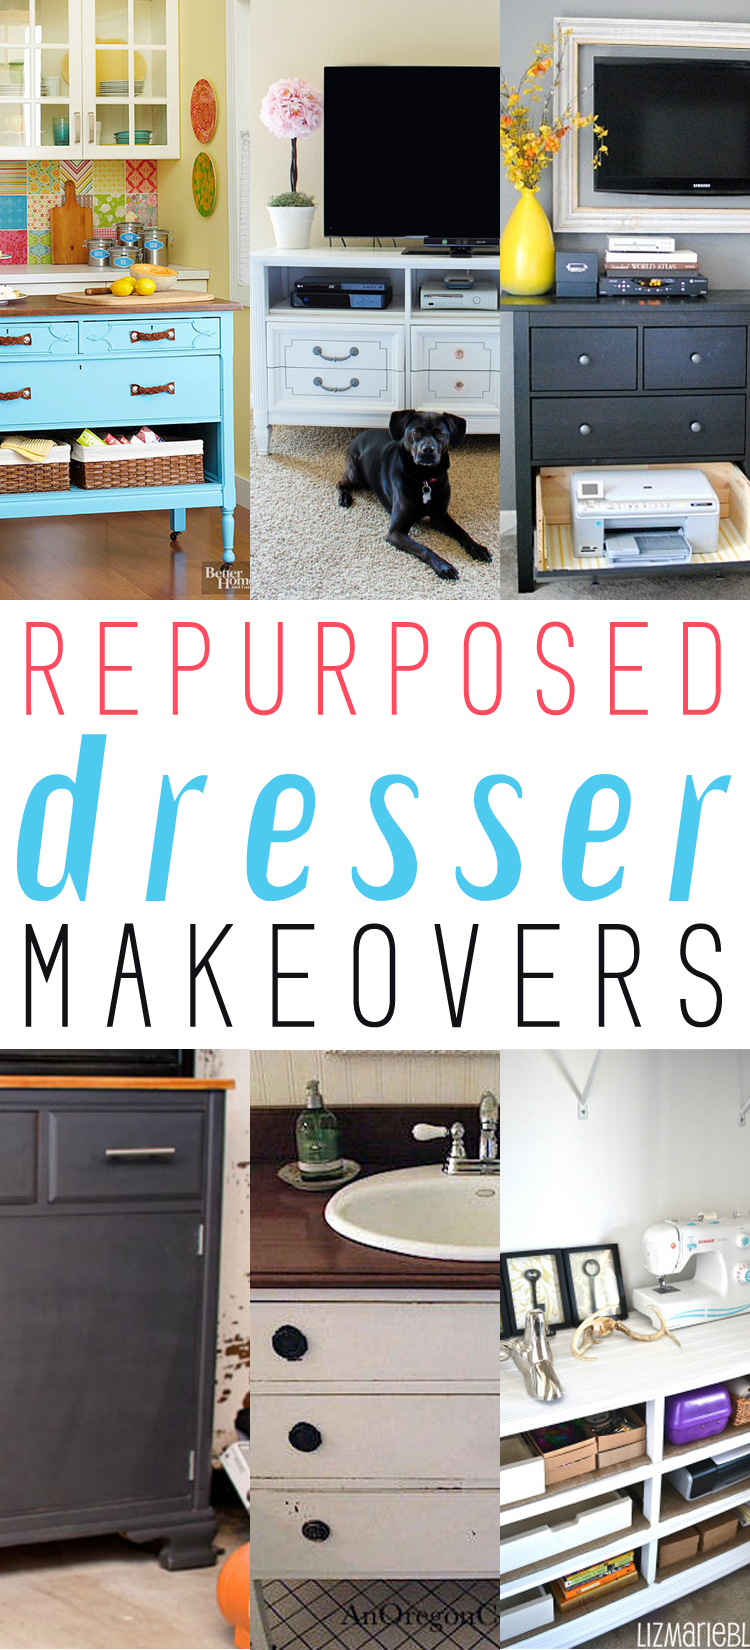 RepurposedDresser-TOWER-001